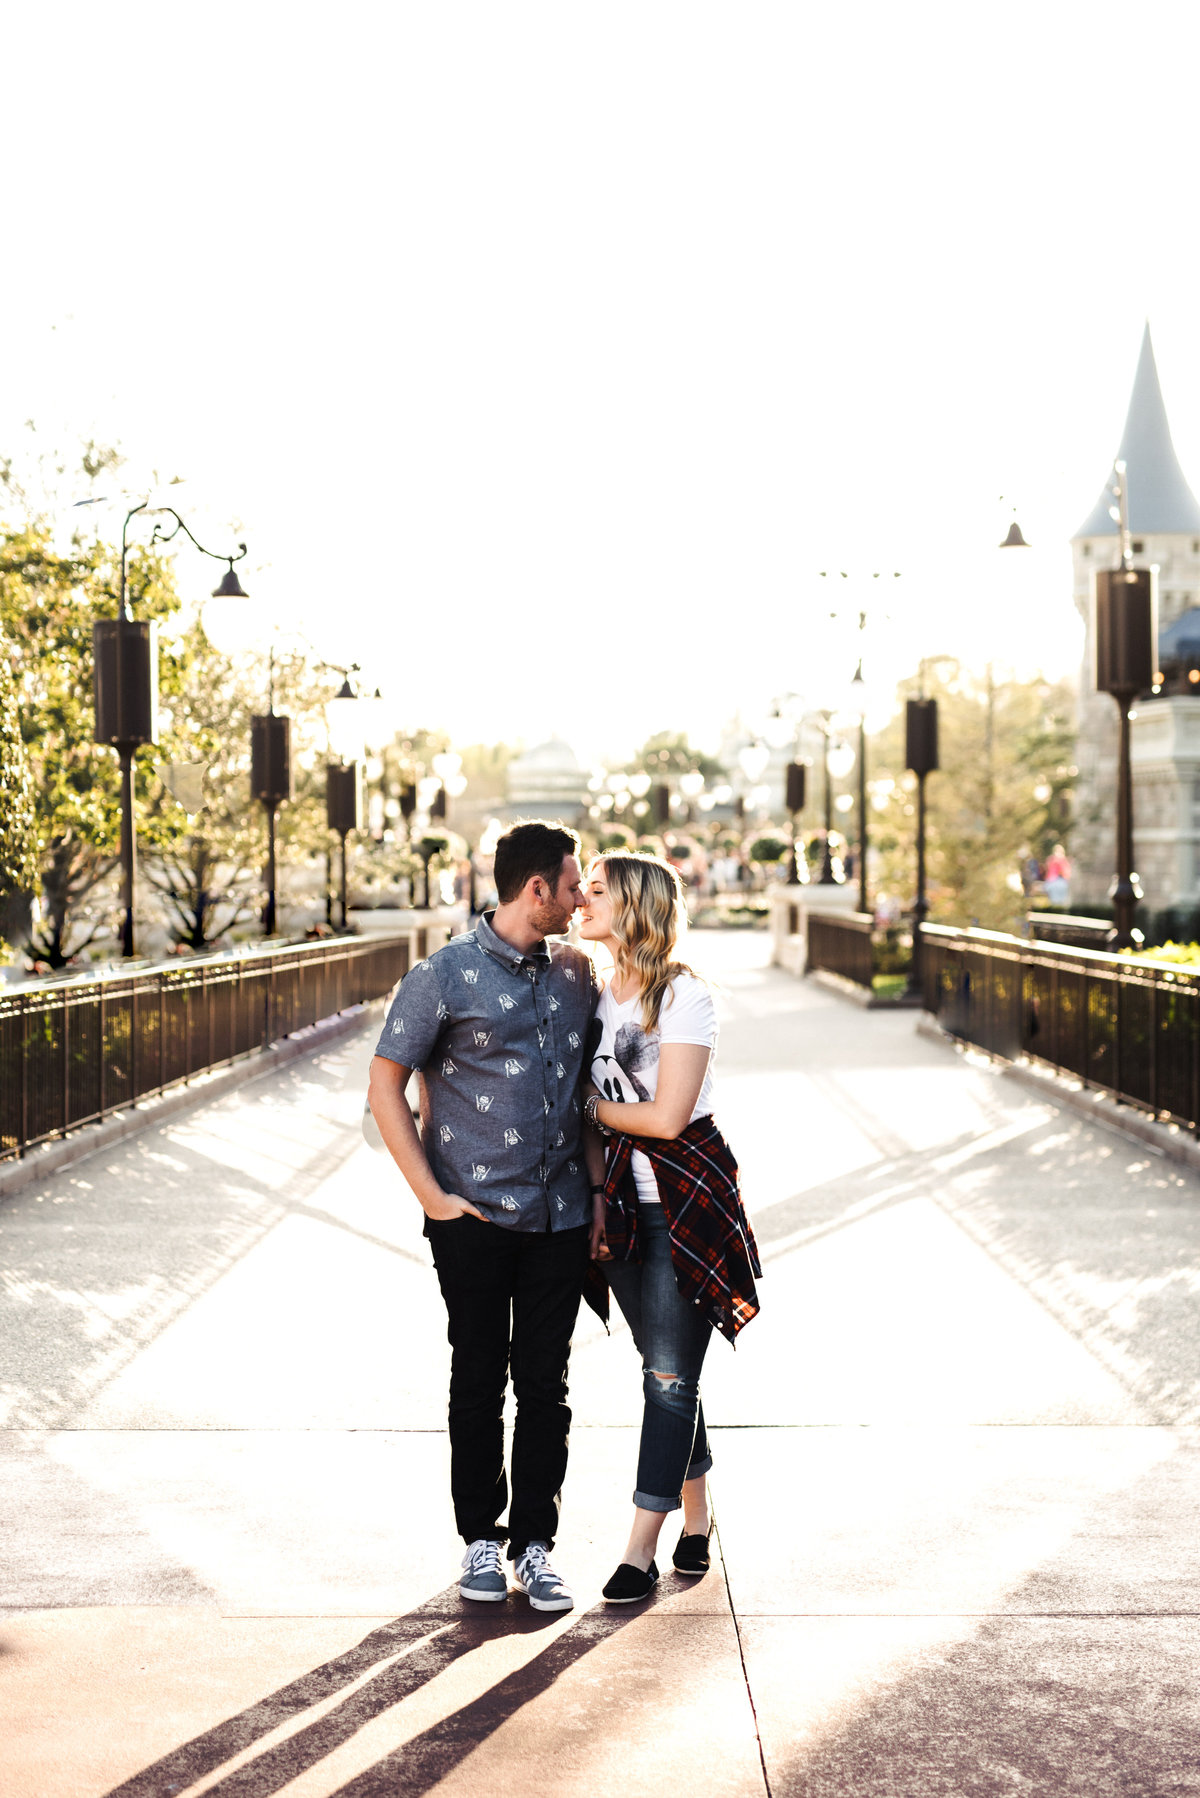 Ally & Brett's Disney Engagement Session (202 of 243)